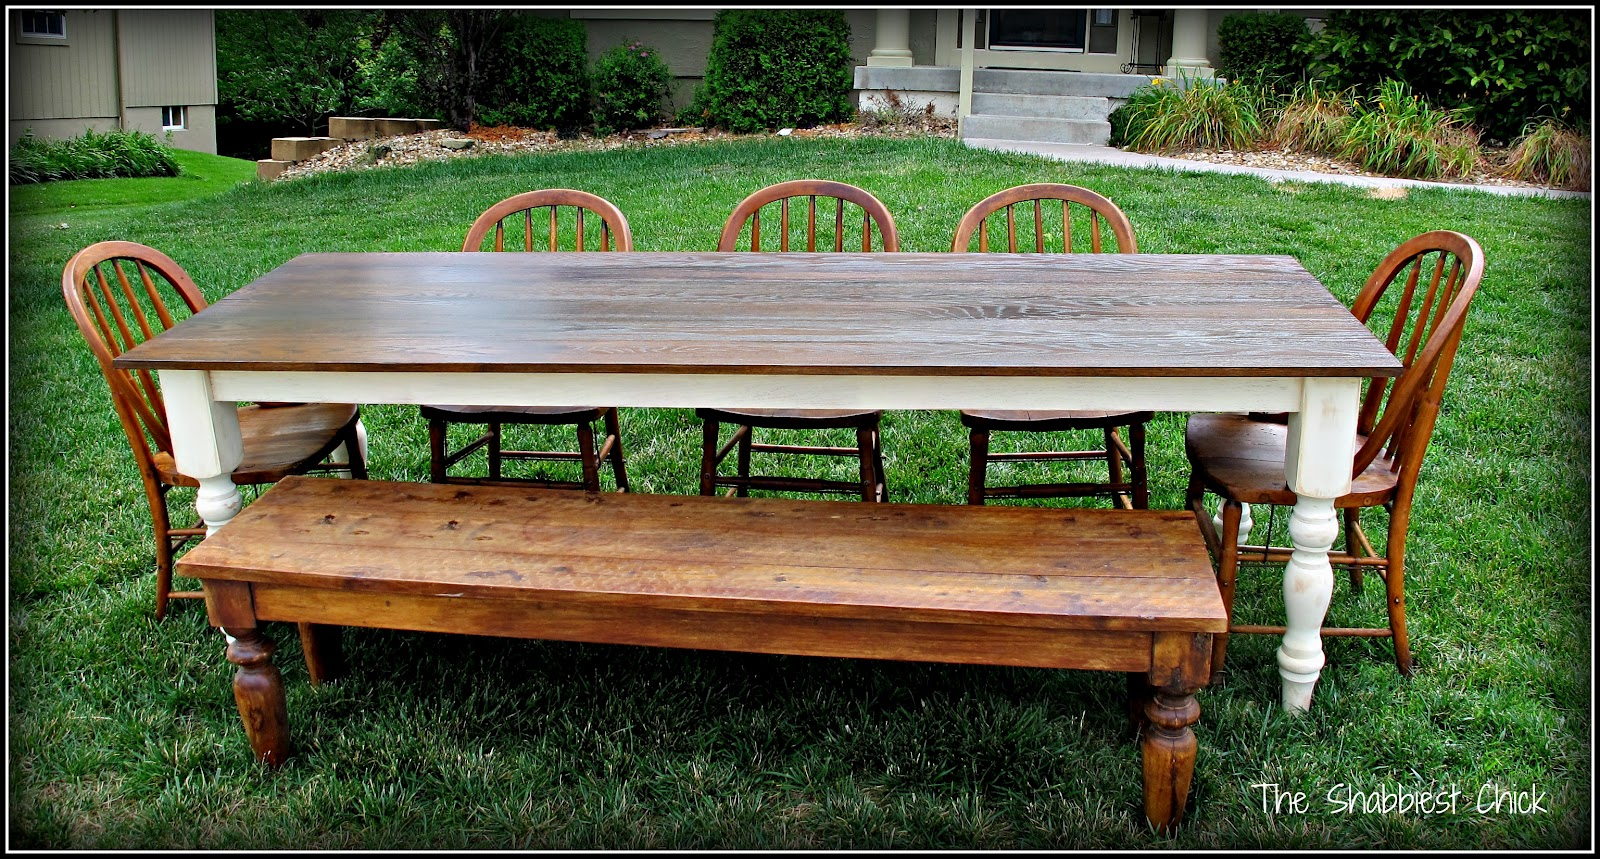 Large Farm Table Plans: The Shabbiest Chick: And Then I Built A Farm Table